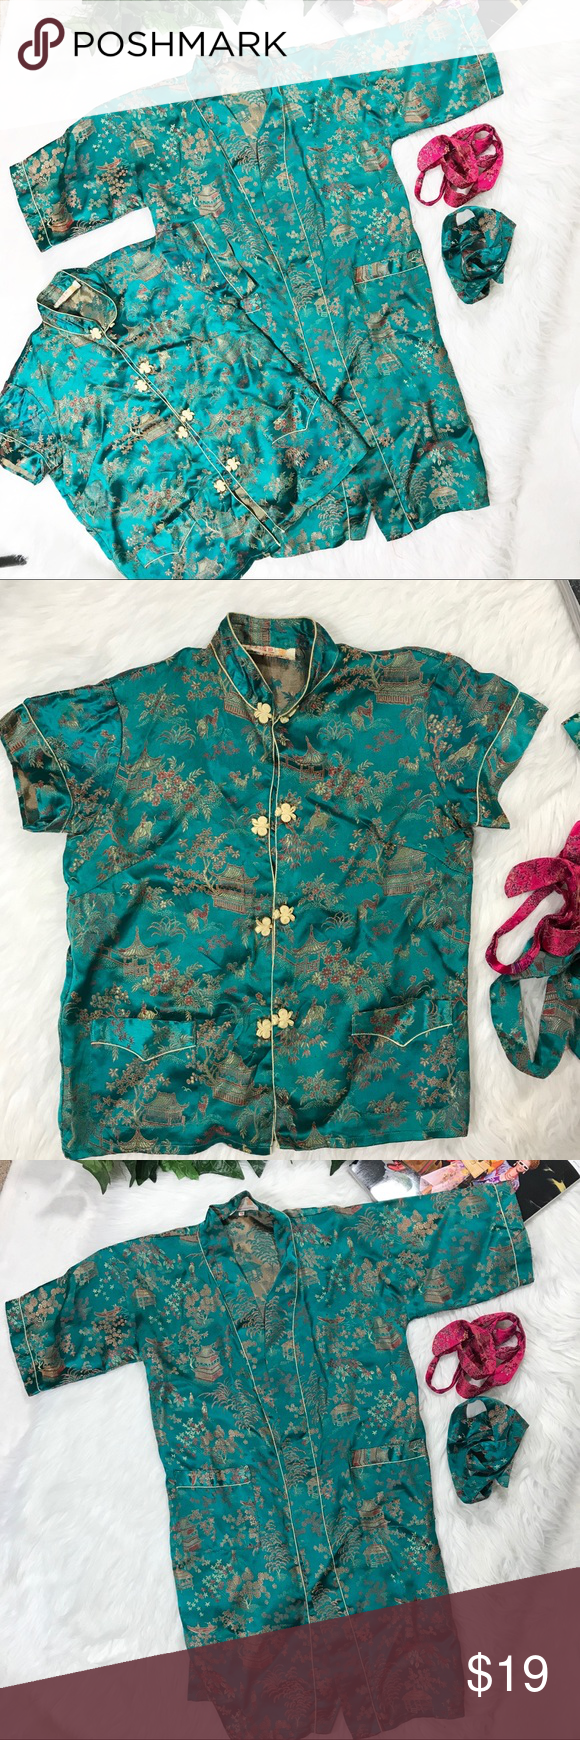 4052caaa02 Girls Chinese Robe   Top Set Jade Green Vintage Girls Chinese Robe   Top  Set Jade